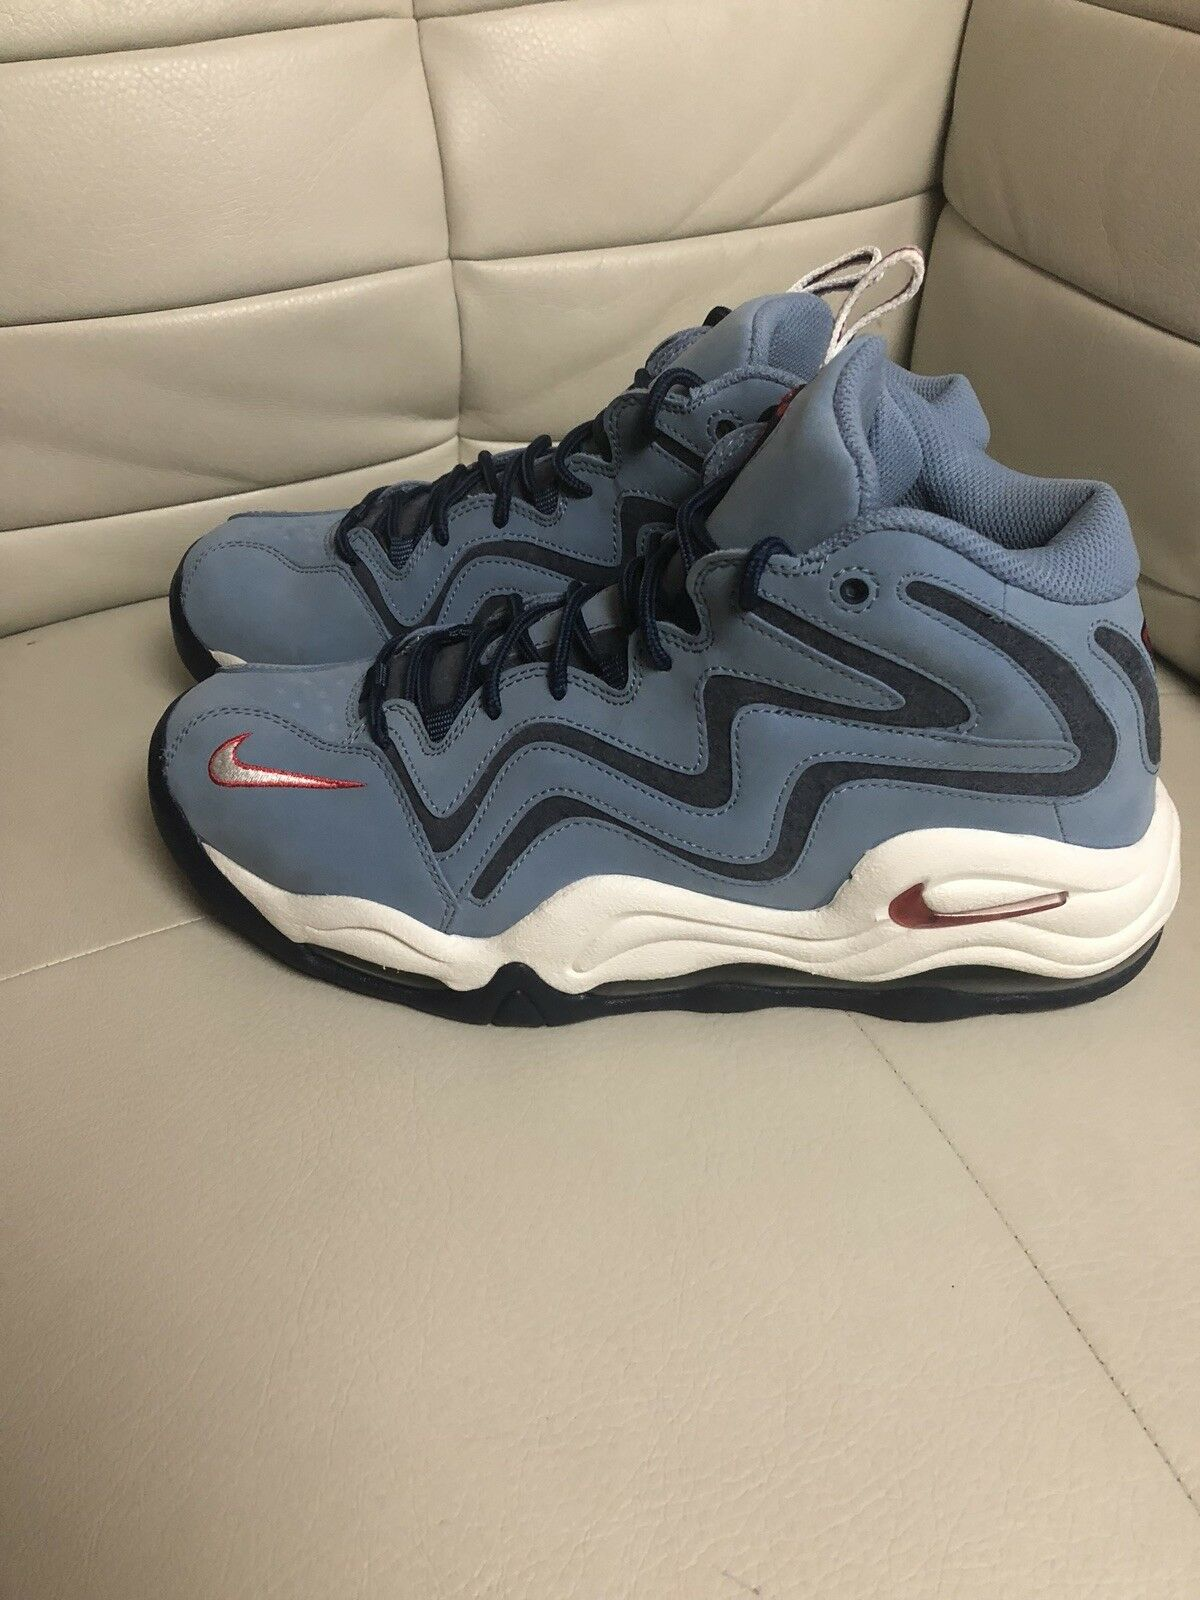 Nike Work Air Pippen Work Nike Blue Size 10 397f52